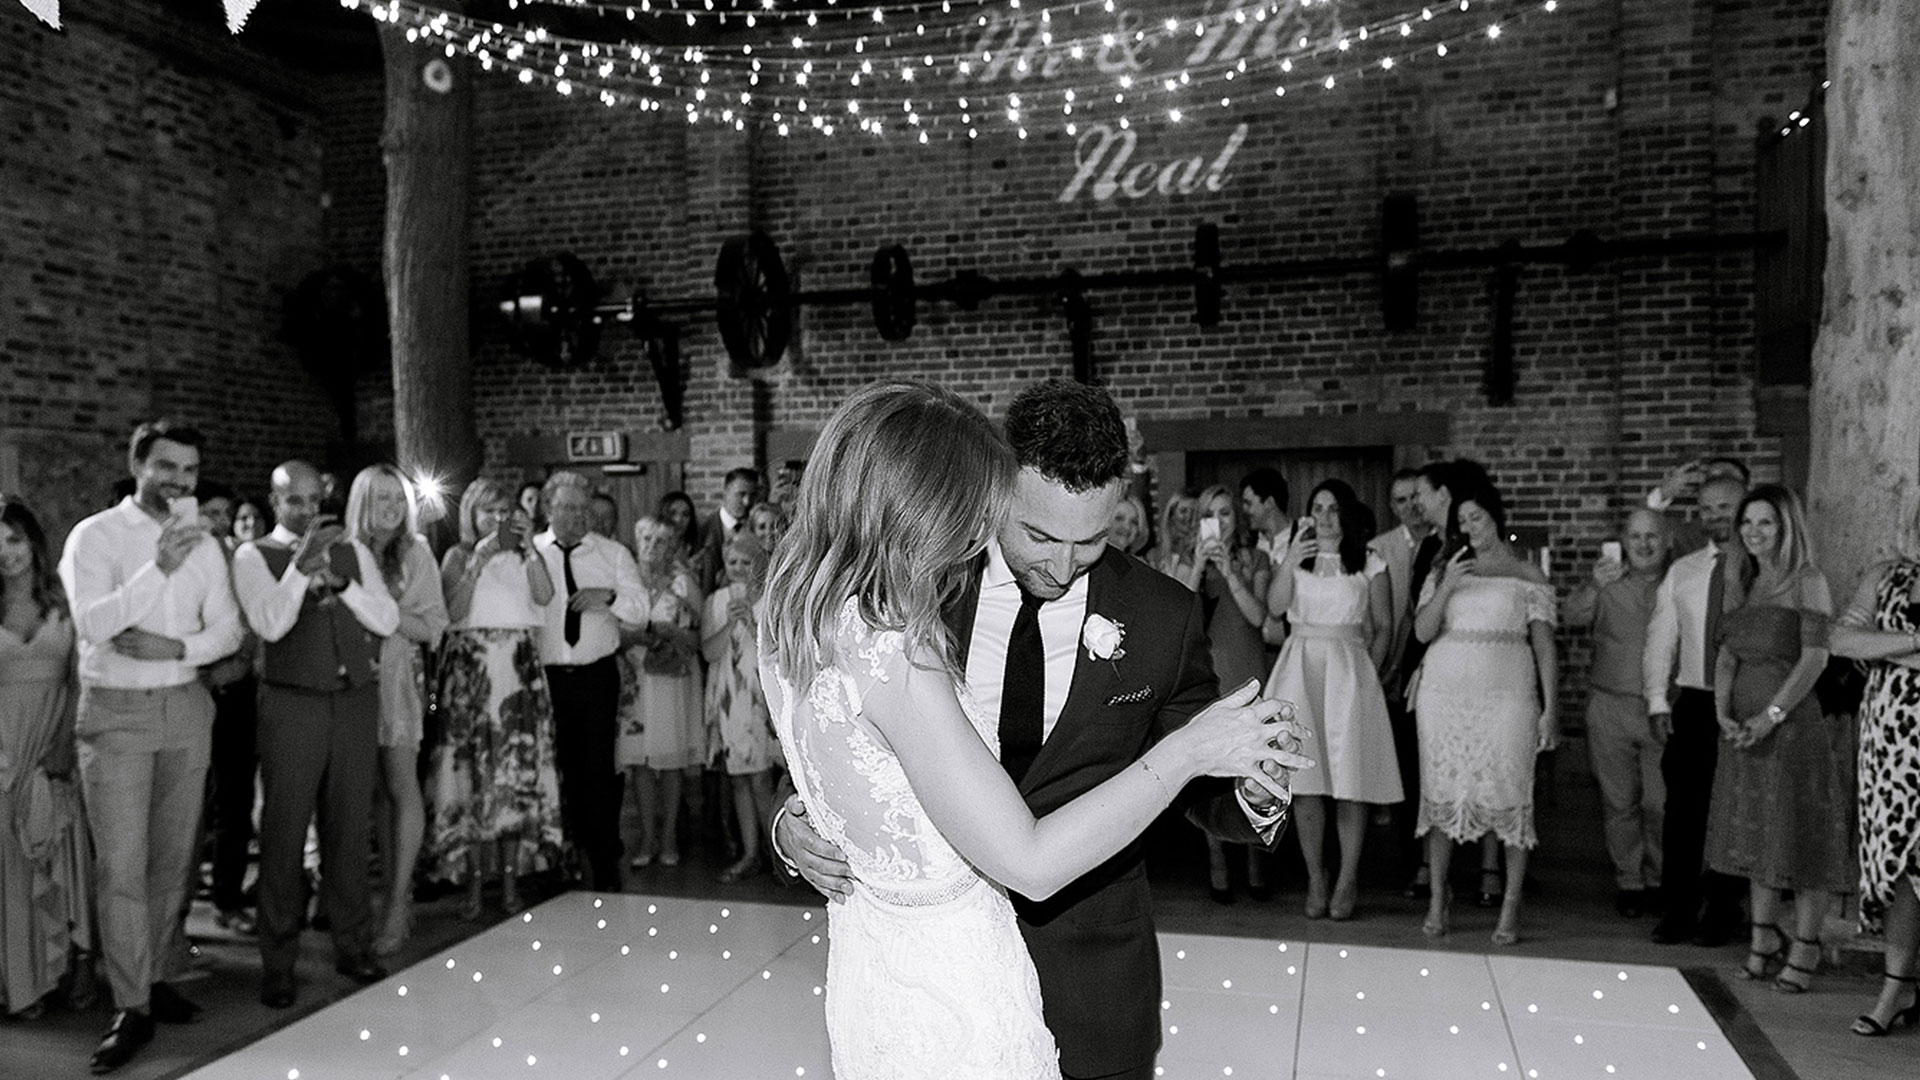 A bride and groom dance their first wedding dance on a white dancefloor inside the beautiful barn wedding venue